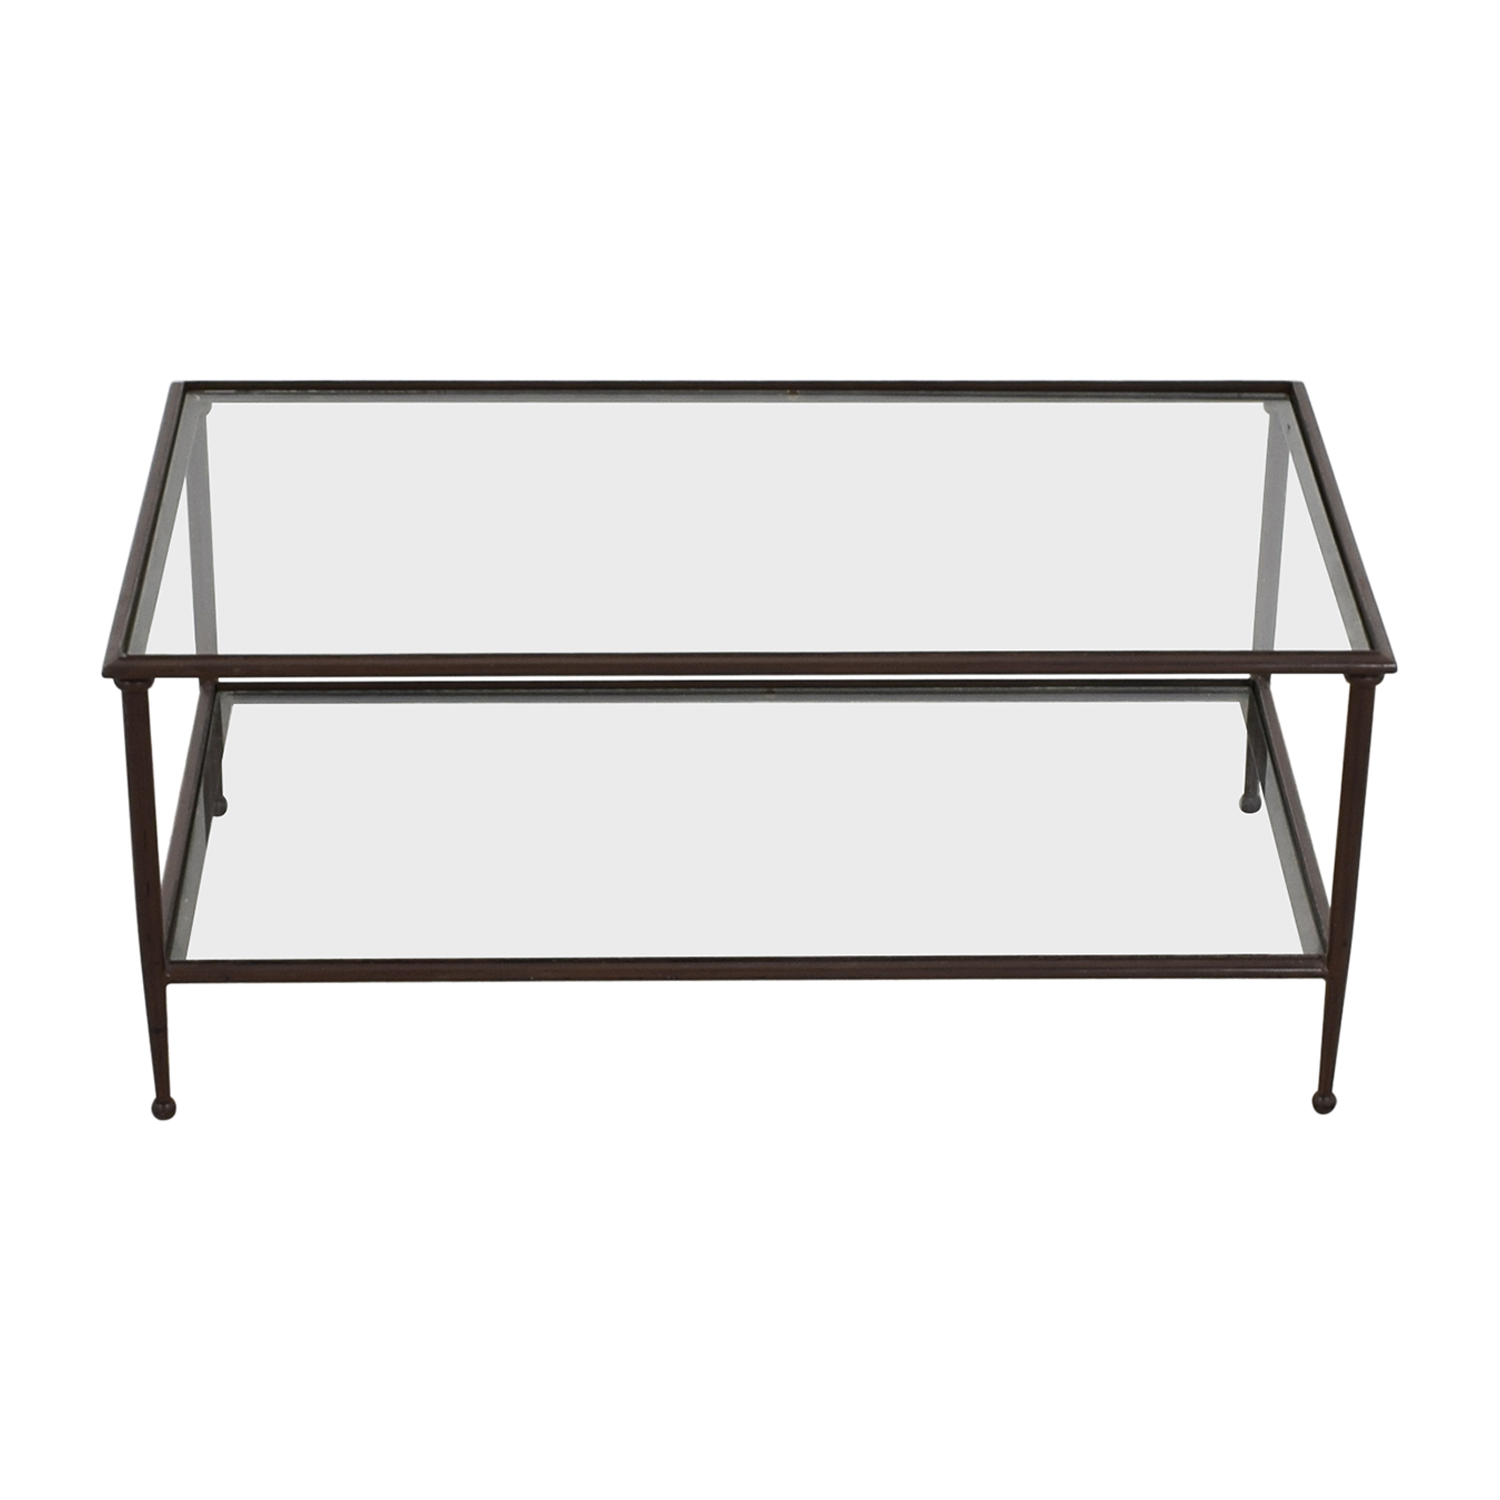 Delicieux 74% OFF   Crate U0026 Barrel Crate U0026 Barrel Glass U0026 Metal Coffee Table / Tables